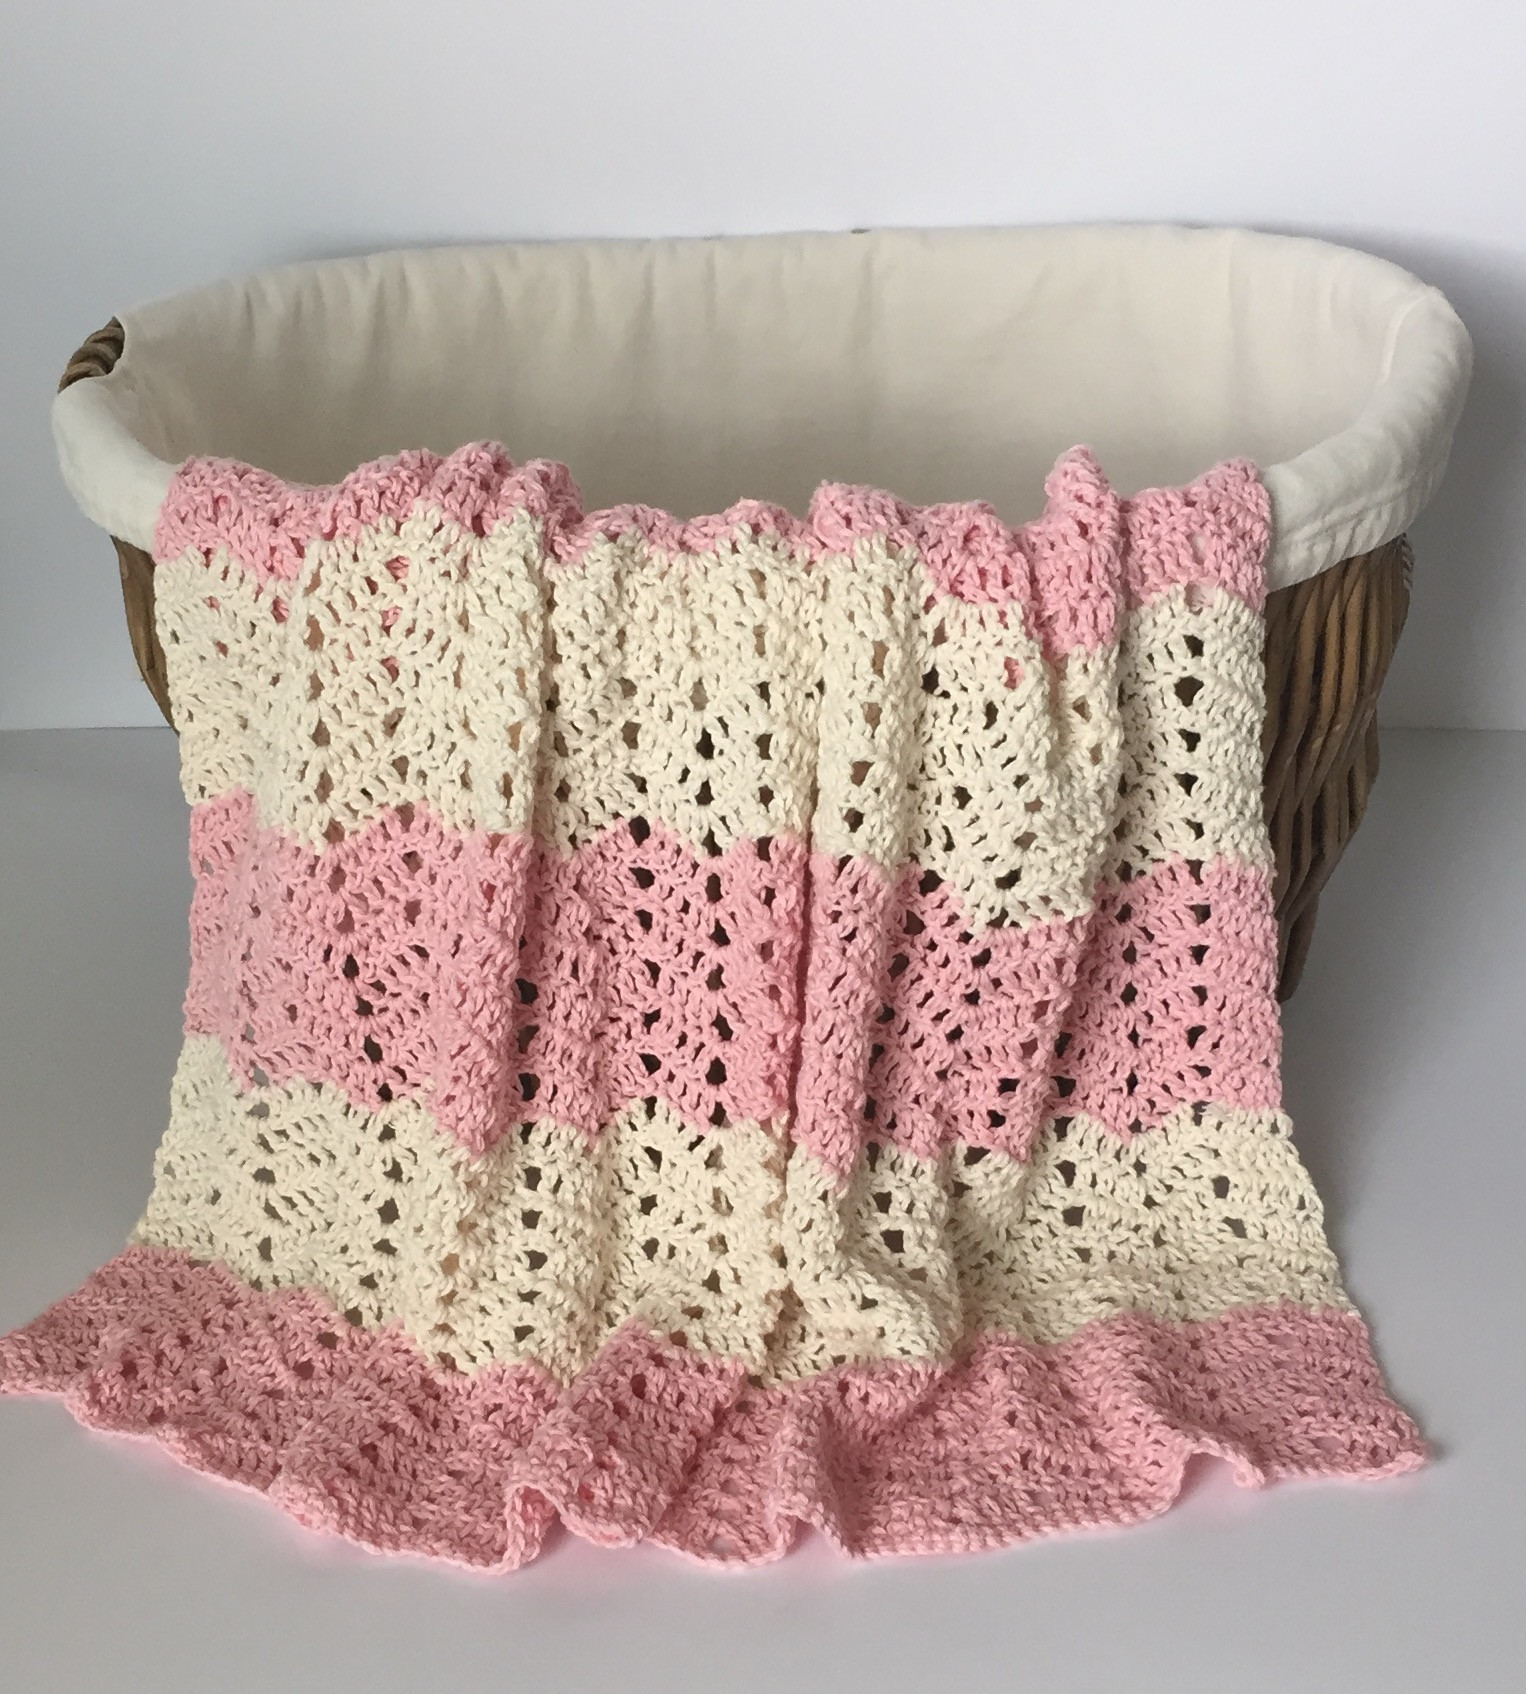 Crochet Patterns for Baby Blankets Awesome Crochet Pattern Peek A Boo Chevron Baby Blanket Of Great 50 Photos Crochet Patterns for Baby Blankets